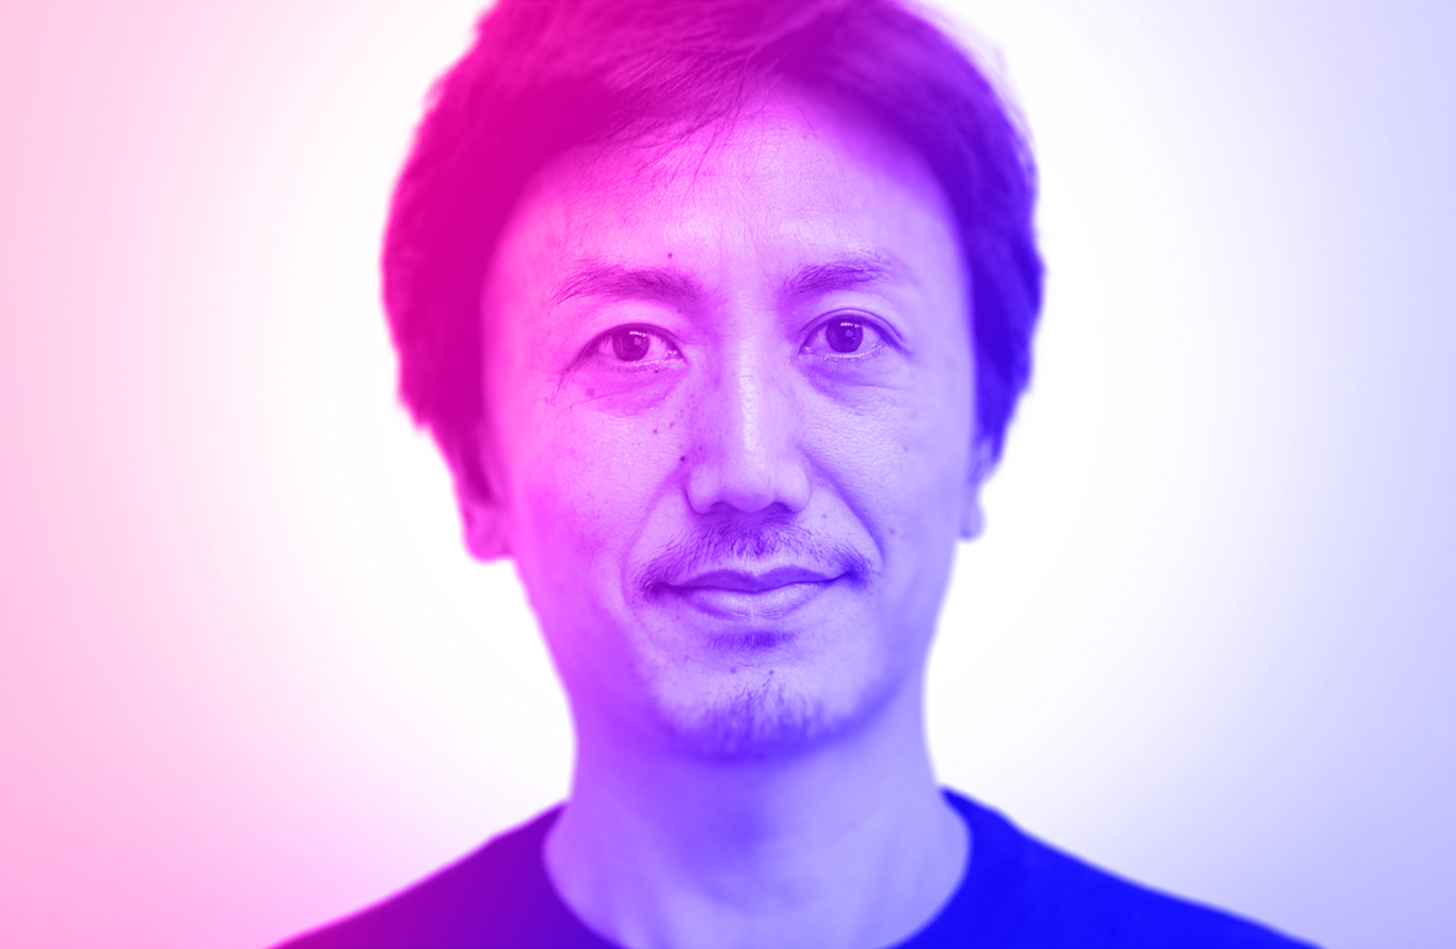 Kosuke Takeshige: Creative Director